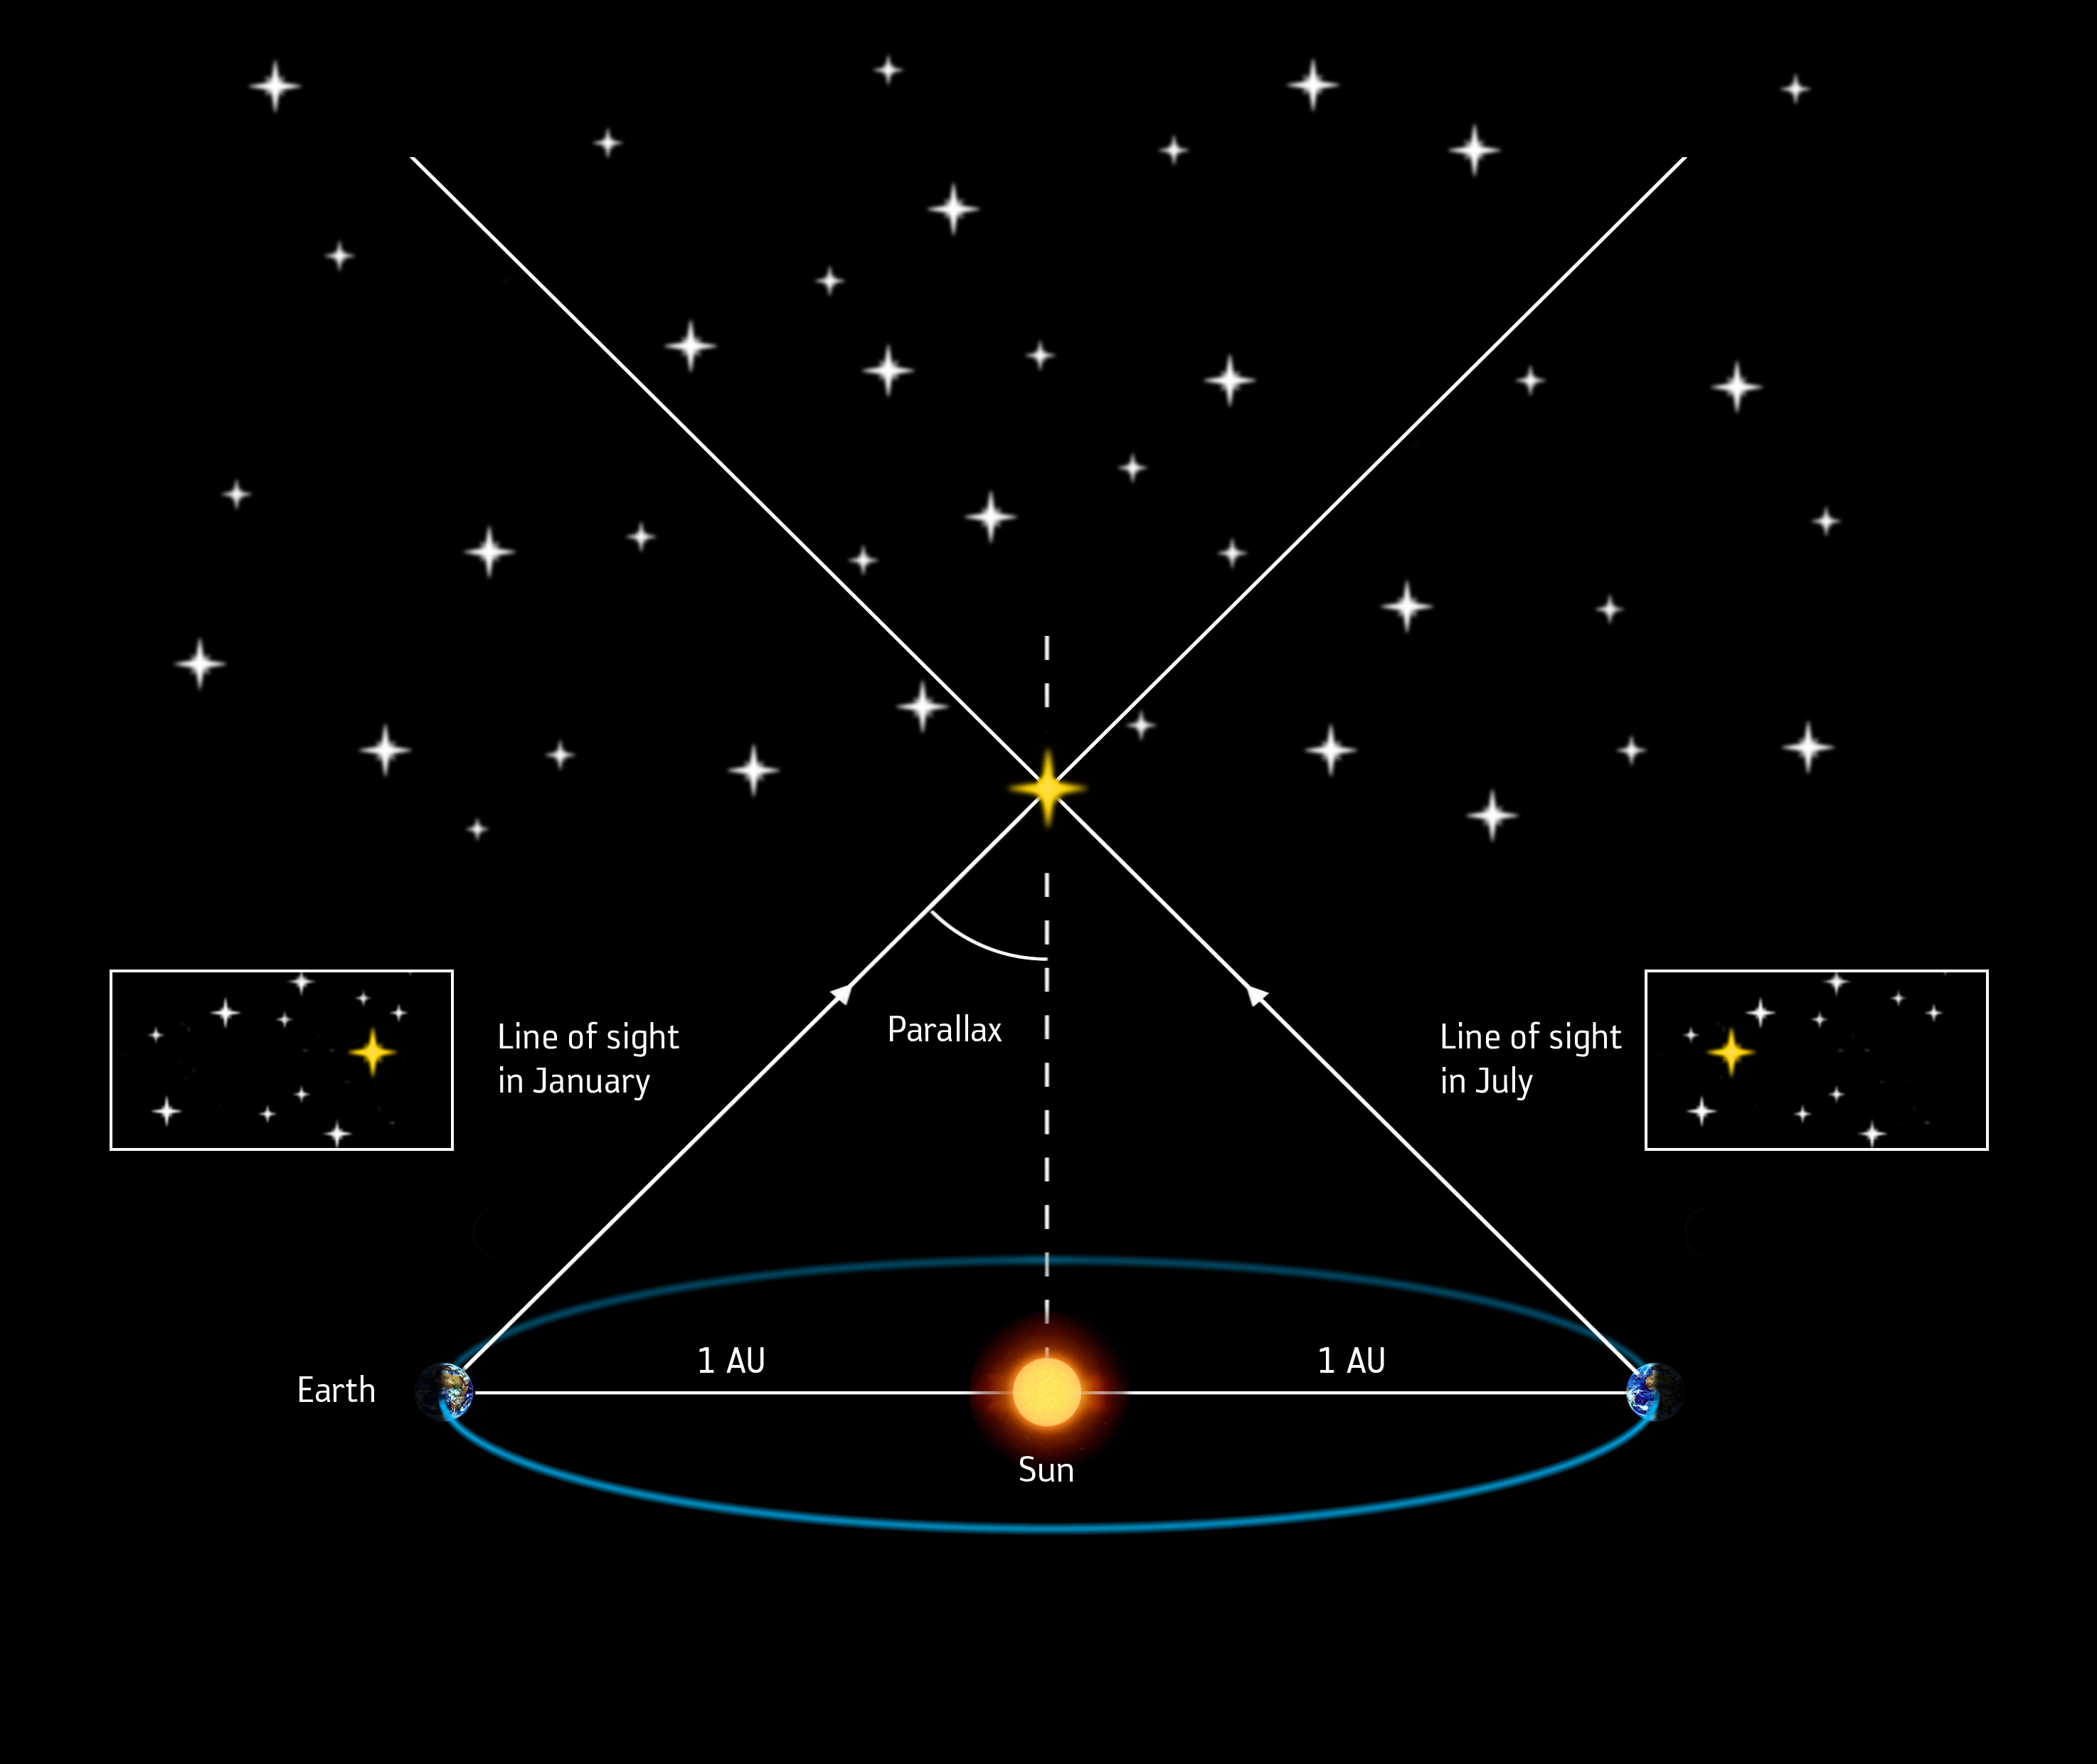 space in images 2013 06 measuring stellar distances by parallax